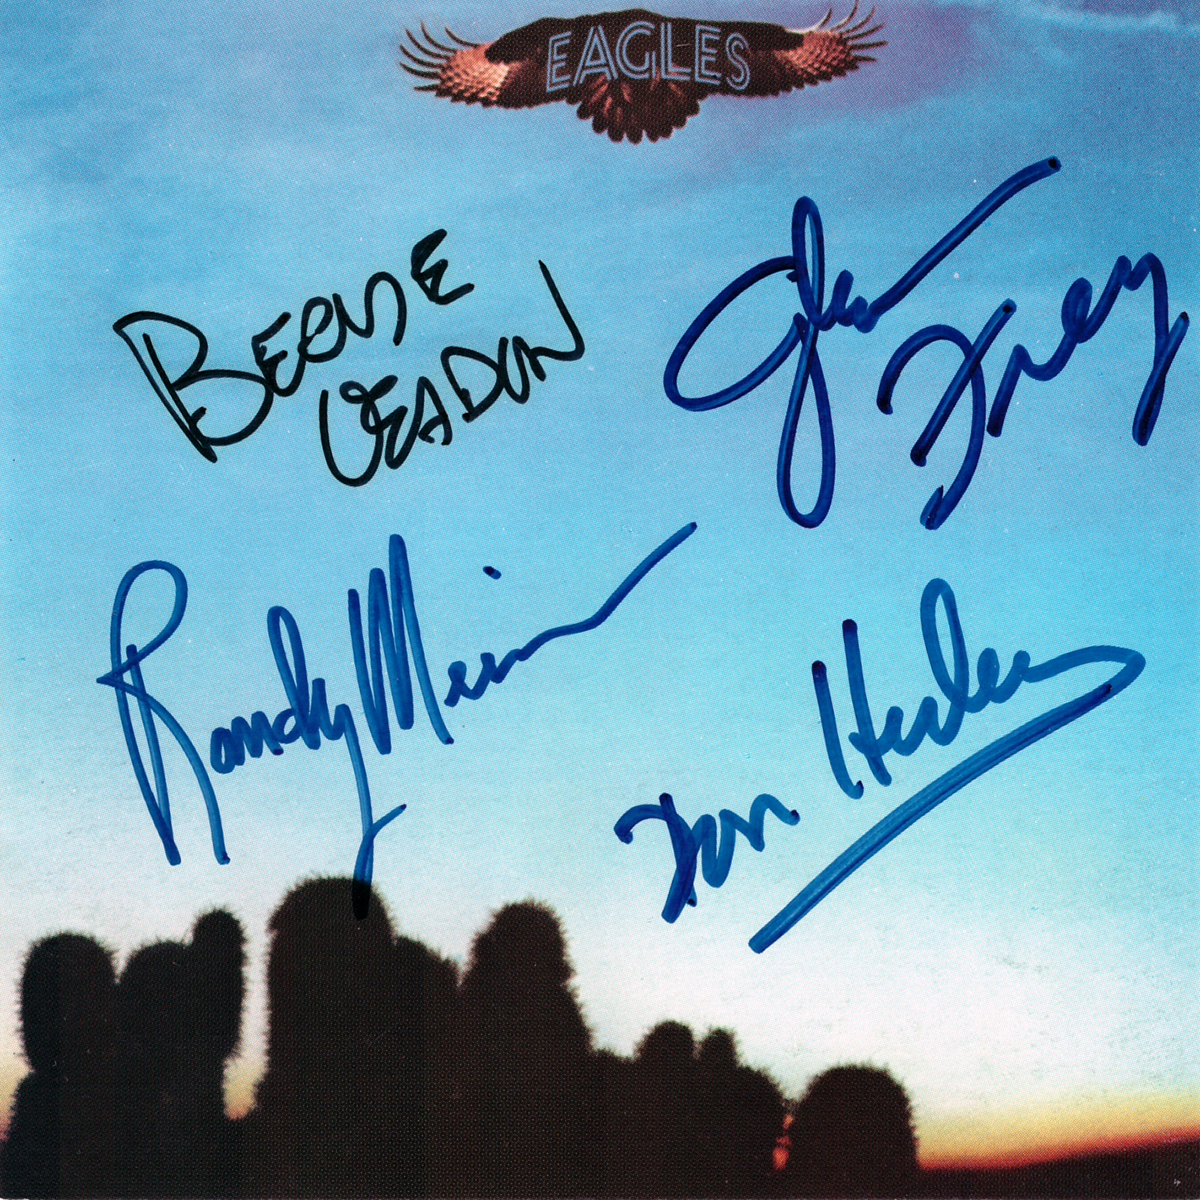 Eagles CD Cover #1